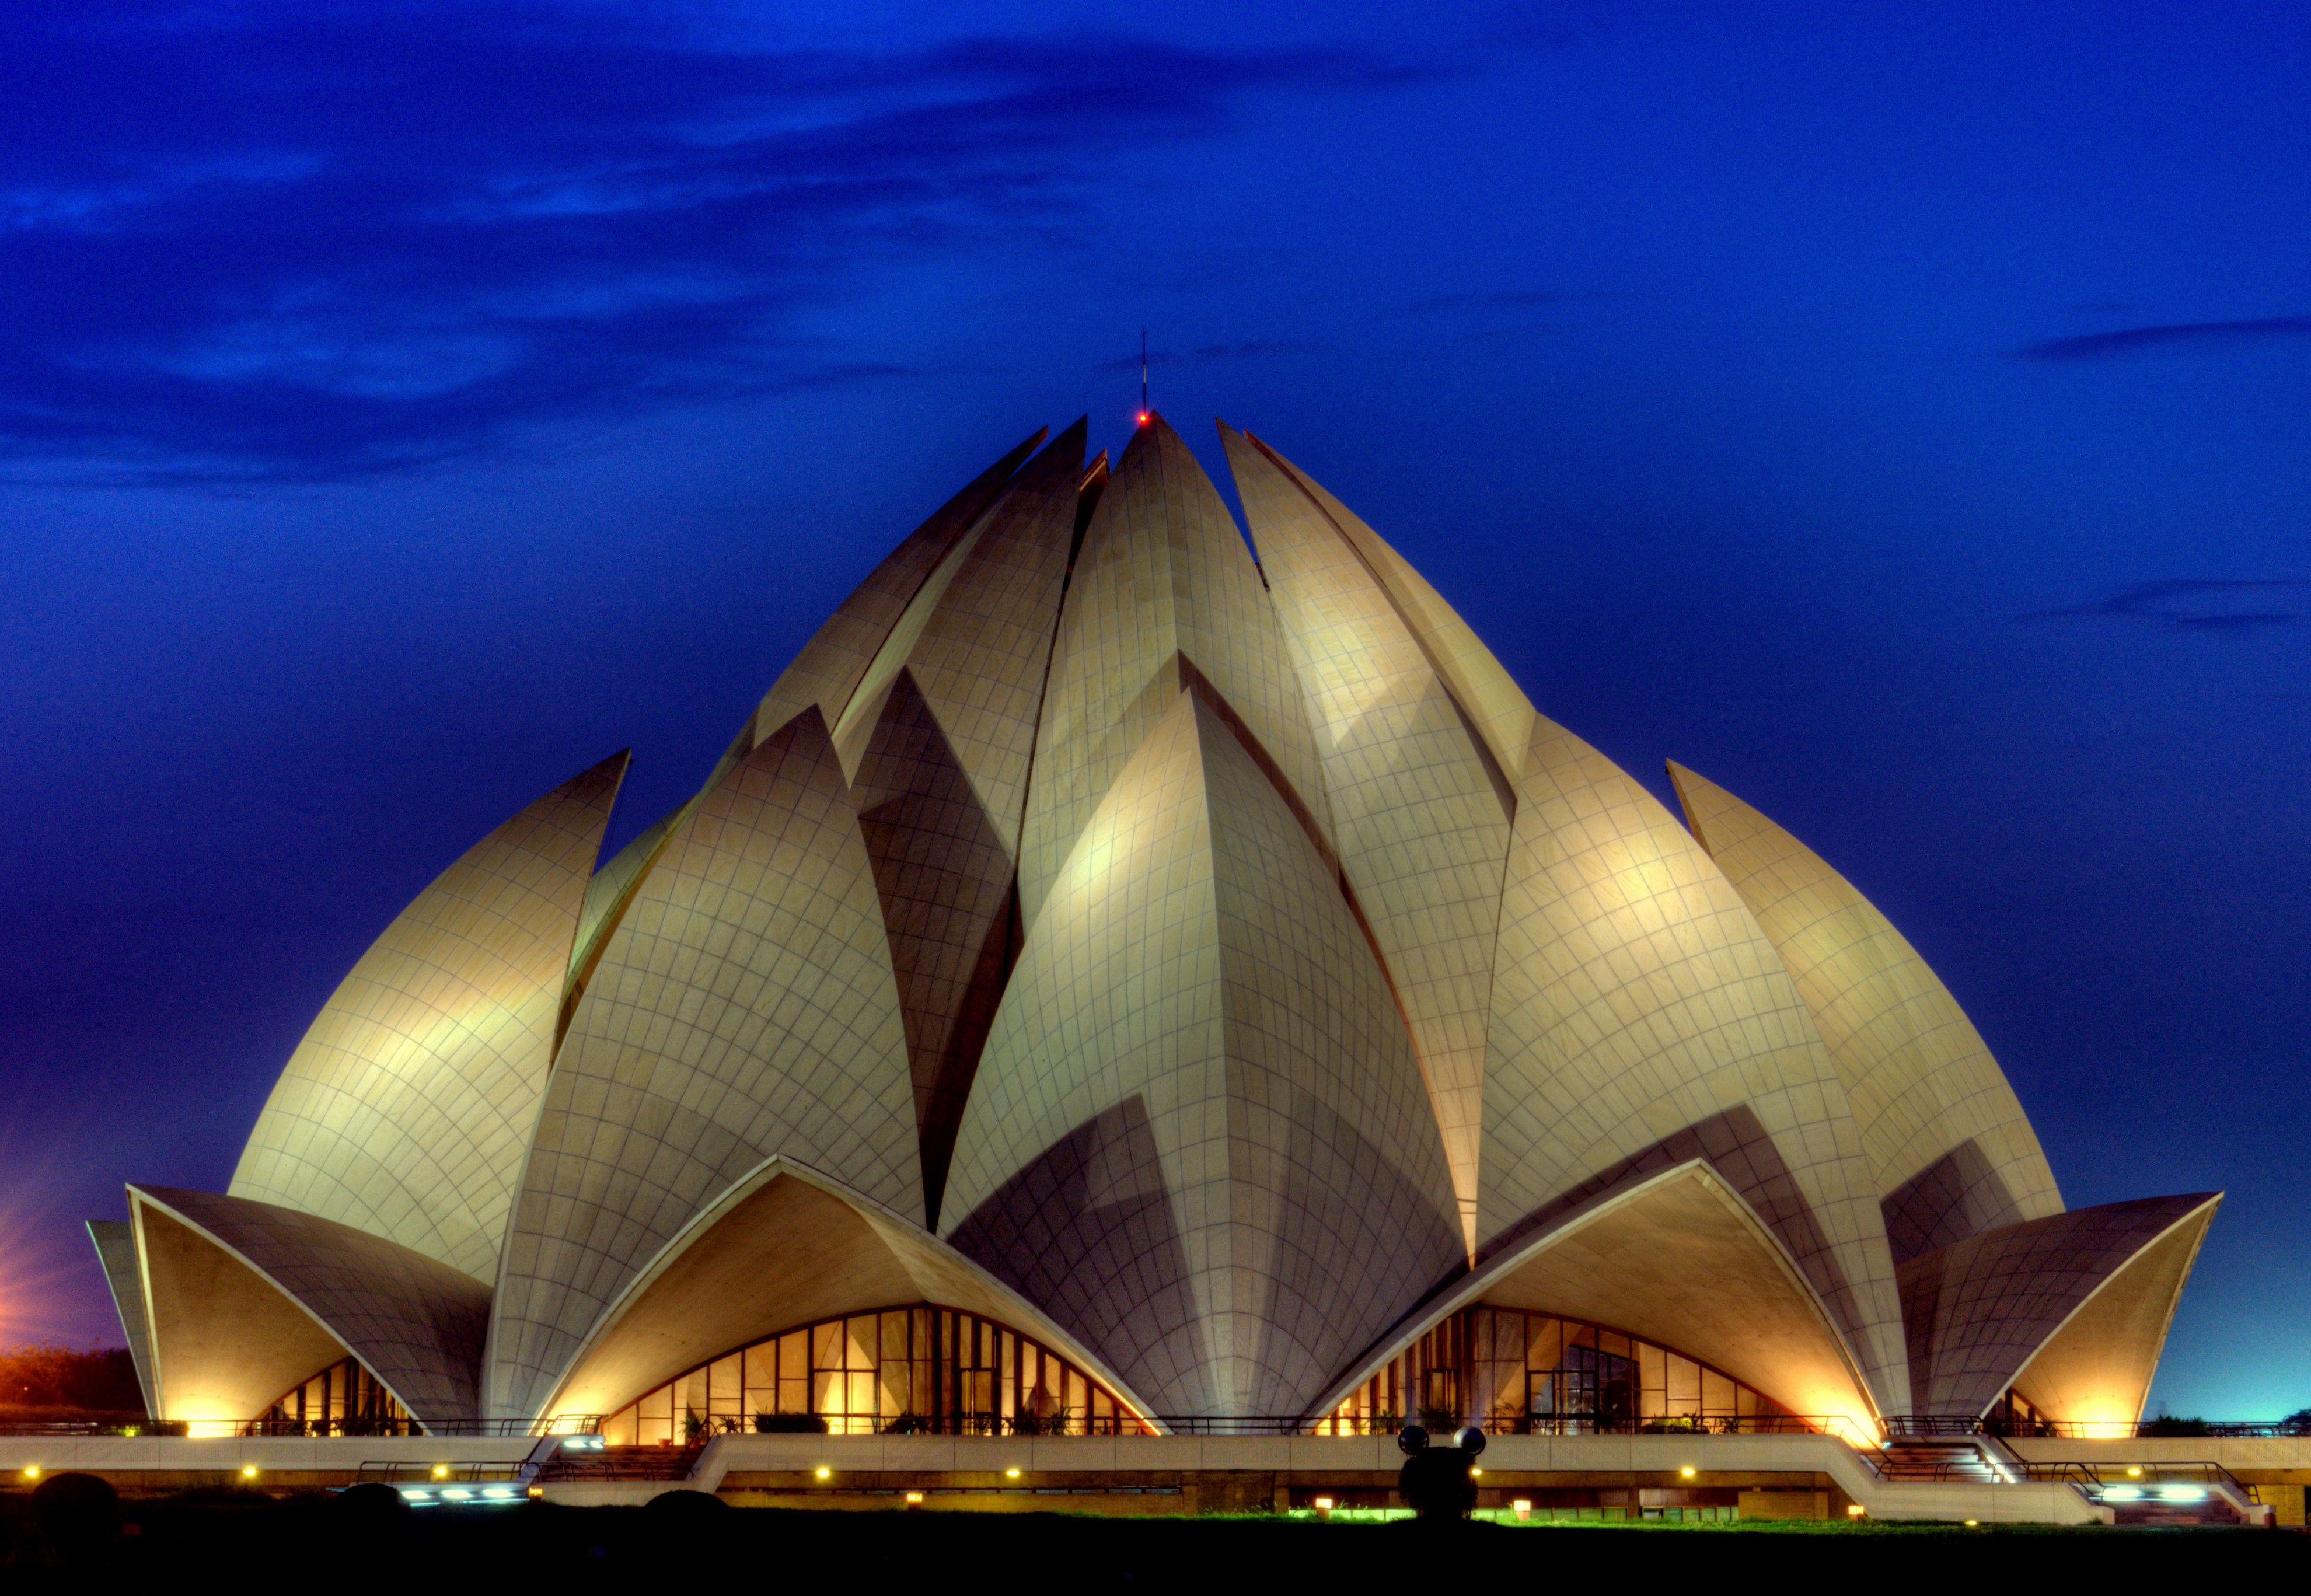 The Beautiful Lotus Temple Lit In The Night